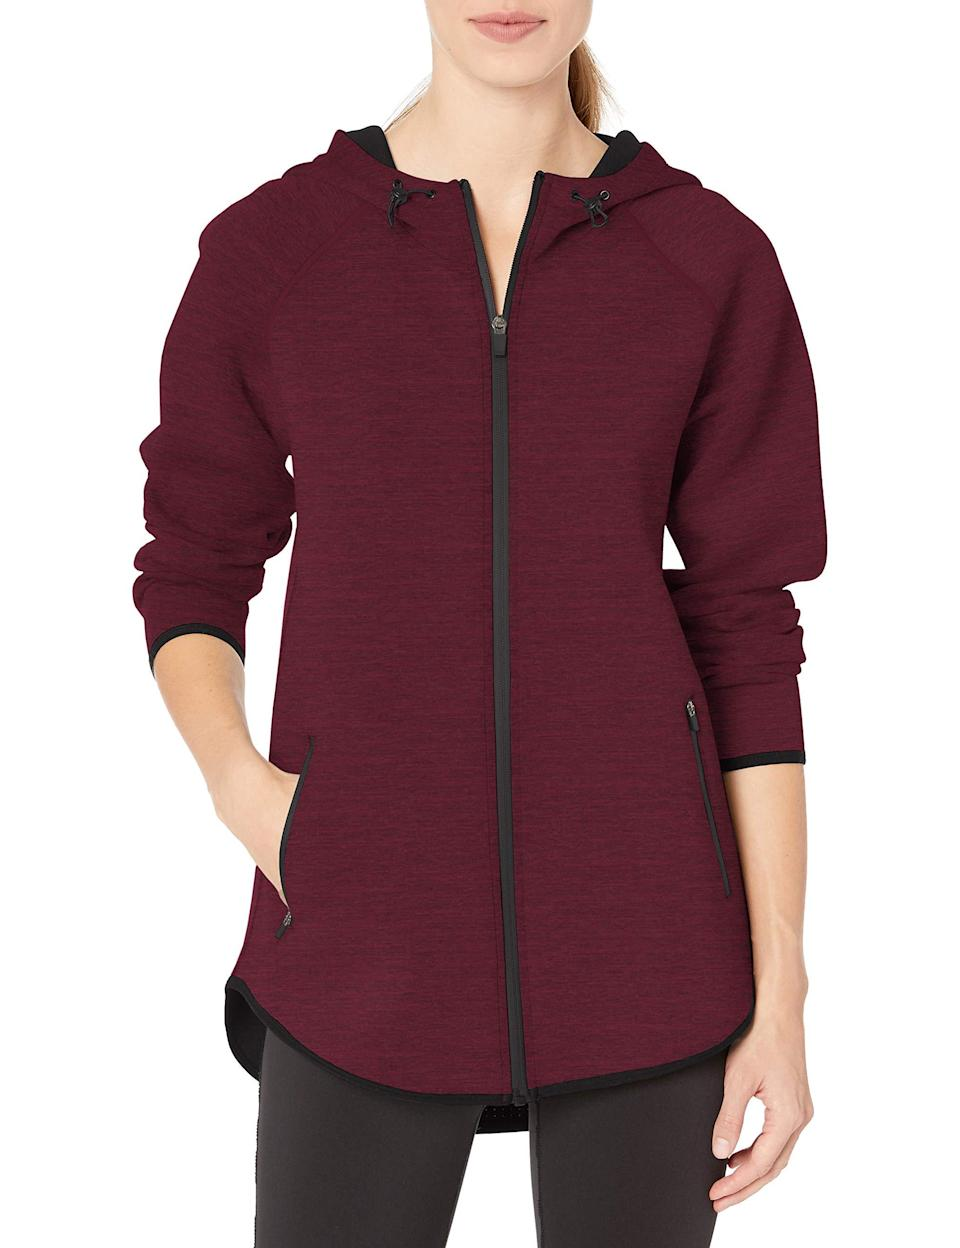 "<br><br><strong>Amazon Essentials</strong> Longer Length Tech-Sport Knit Full-Zip Hooded Jacket, $, available at <a href=""https://amzn.to/3lH7JkR"" rel=""nofollow noopener"" target=""_blank"" data-ylk=""slk:Amazon"" class=""link rapid-noclick-resp"">Amazon</a>"